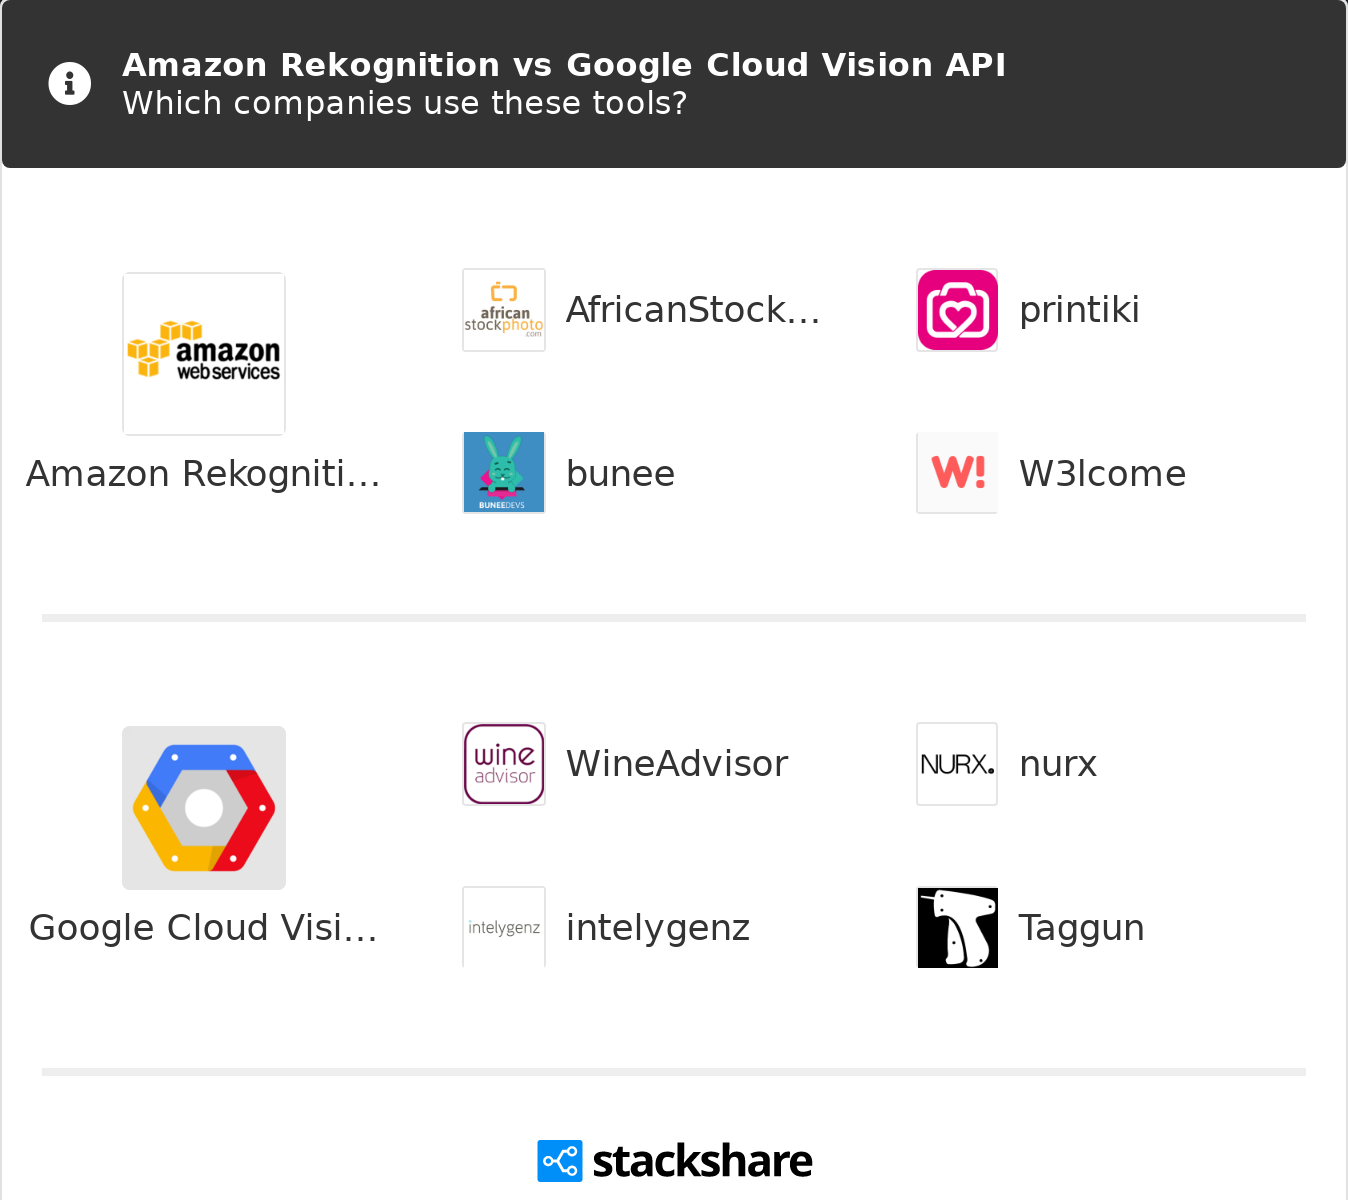 Amazon Rekognition vs Google Cloud Vision API | What are the